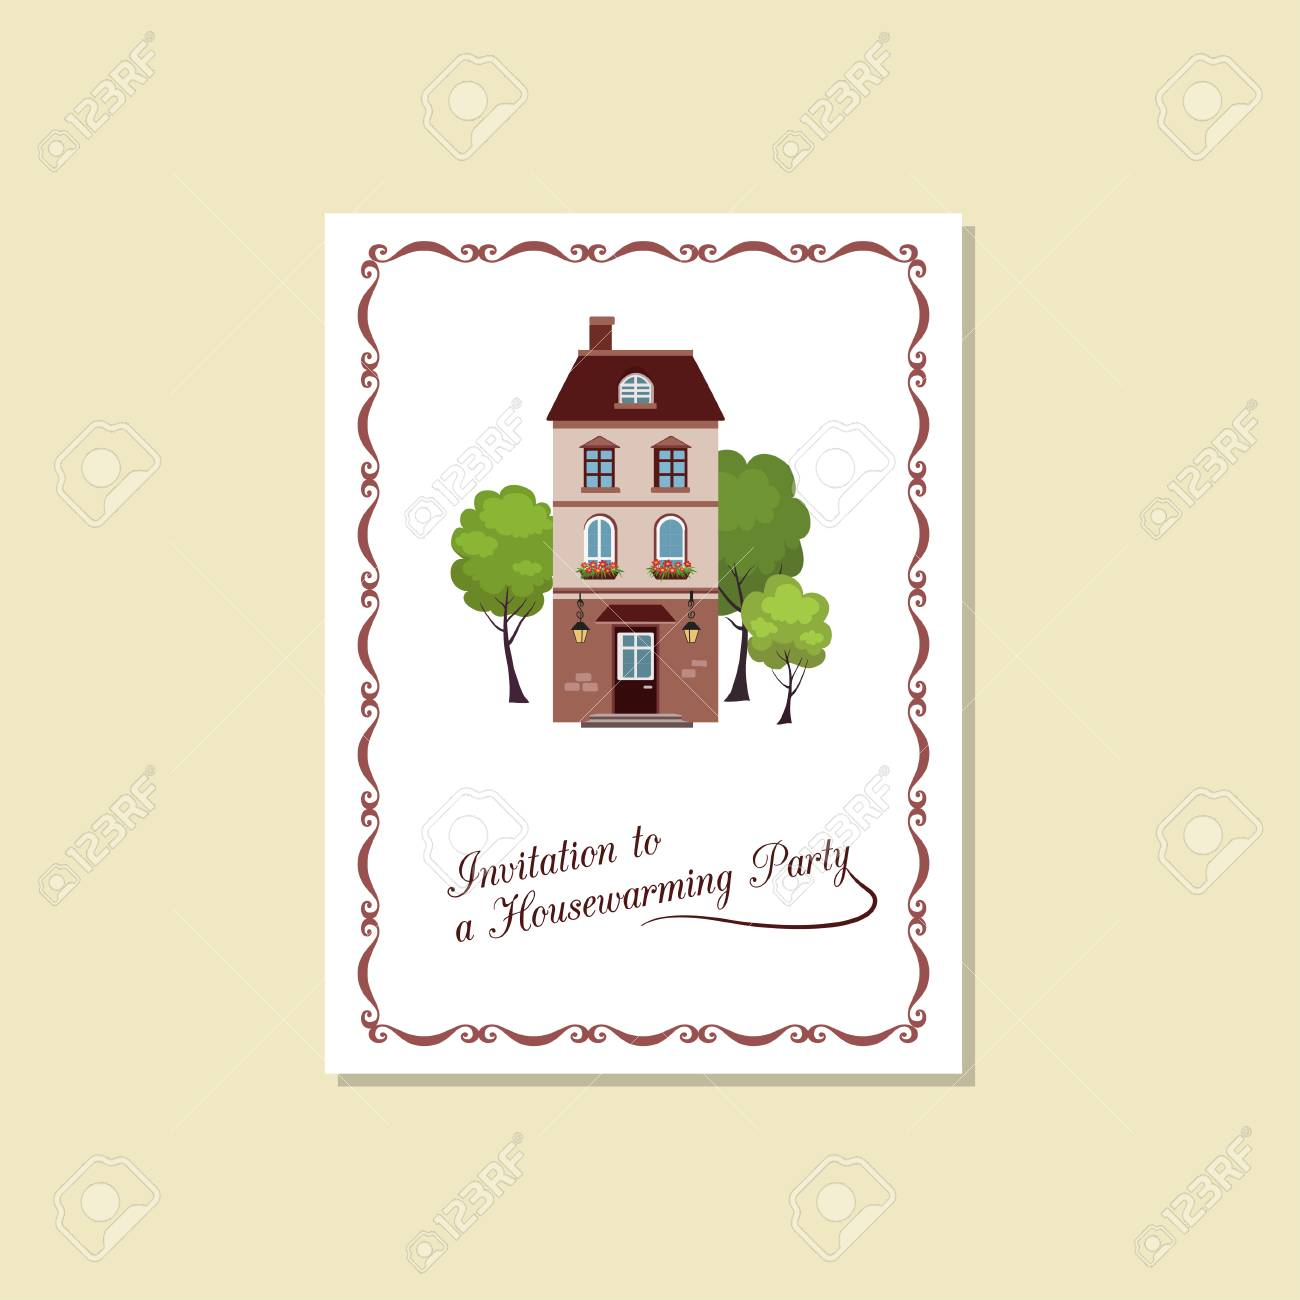 Vector Illustration Of Card Invitation House Warming Party